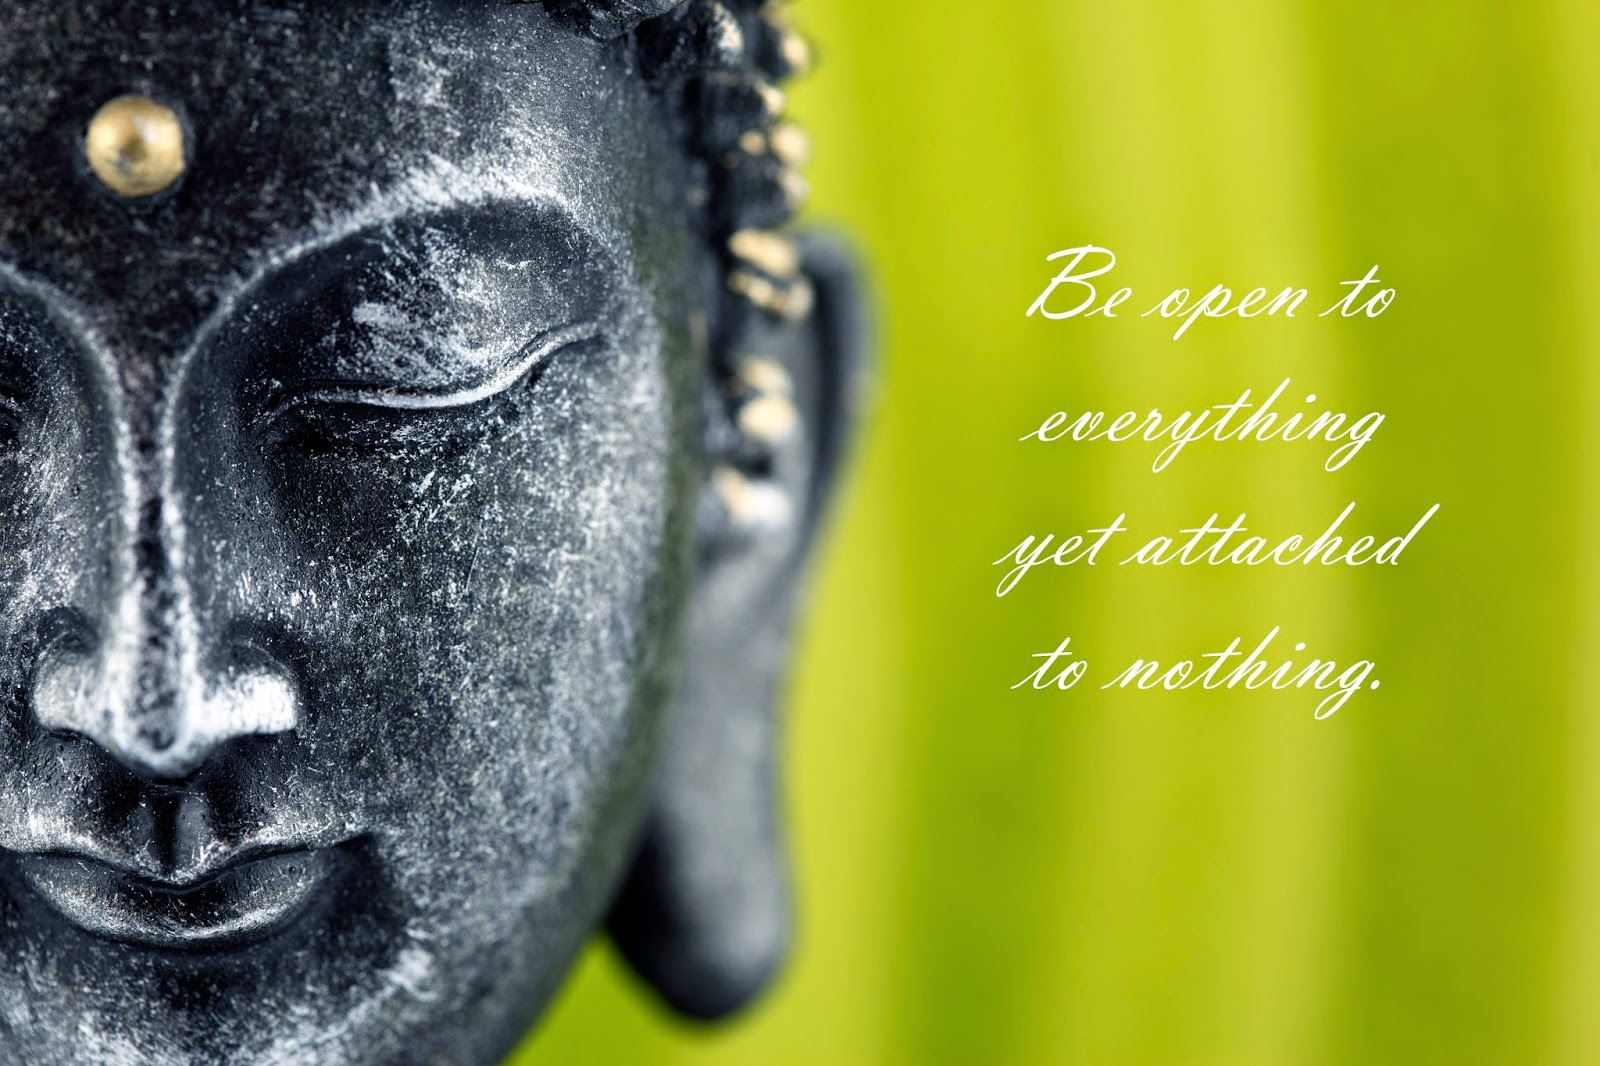 Buddha Quotes On Happiness Amazing Buddha Wallpapers With Quotes On Life And Happiness Hd Pictures